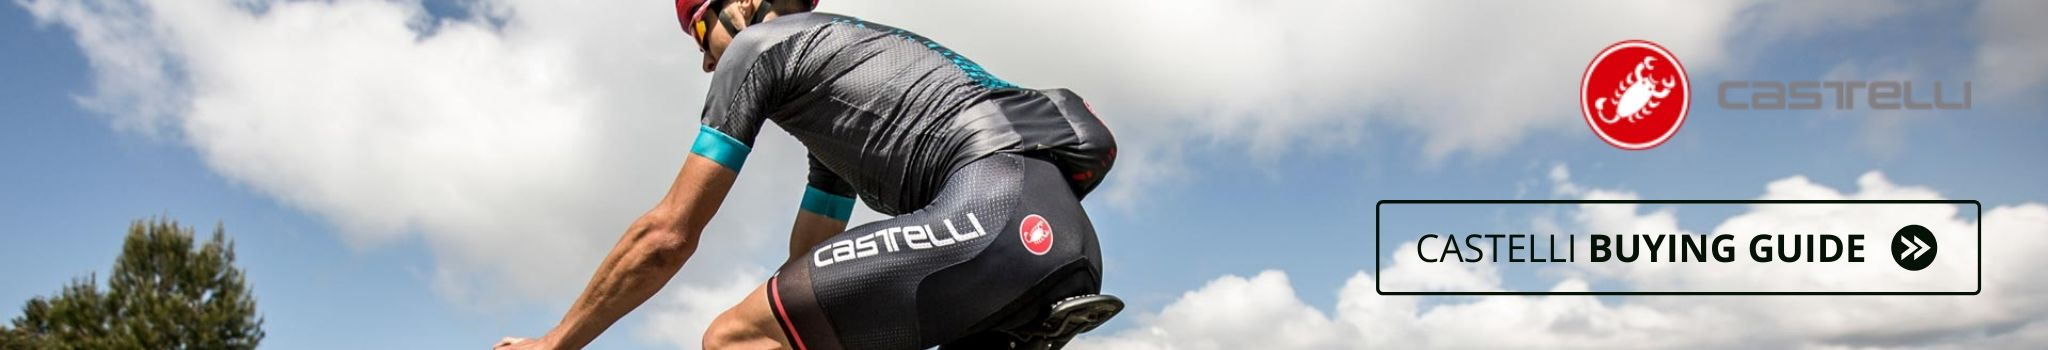 Shop Castelli Cycling Apparel Online at India's Largest Online Specialist Cycling Store. Excellent Support, Free Shipping, Cash on Delivery and EMI Options.